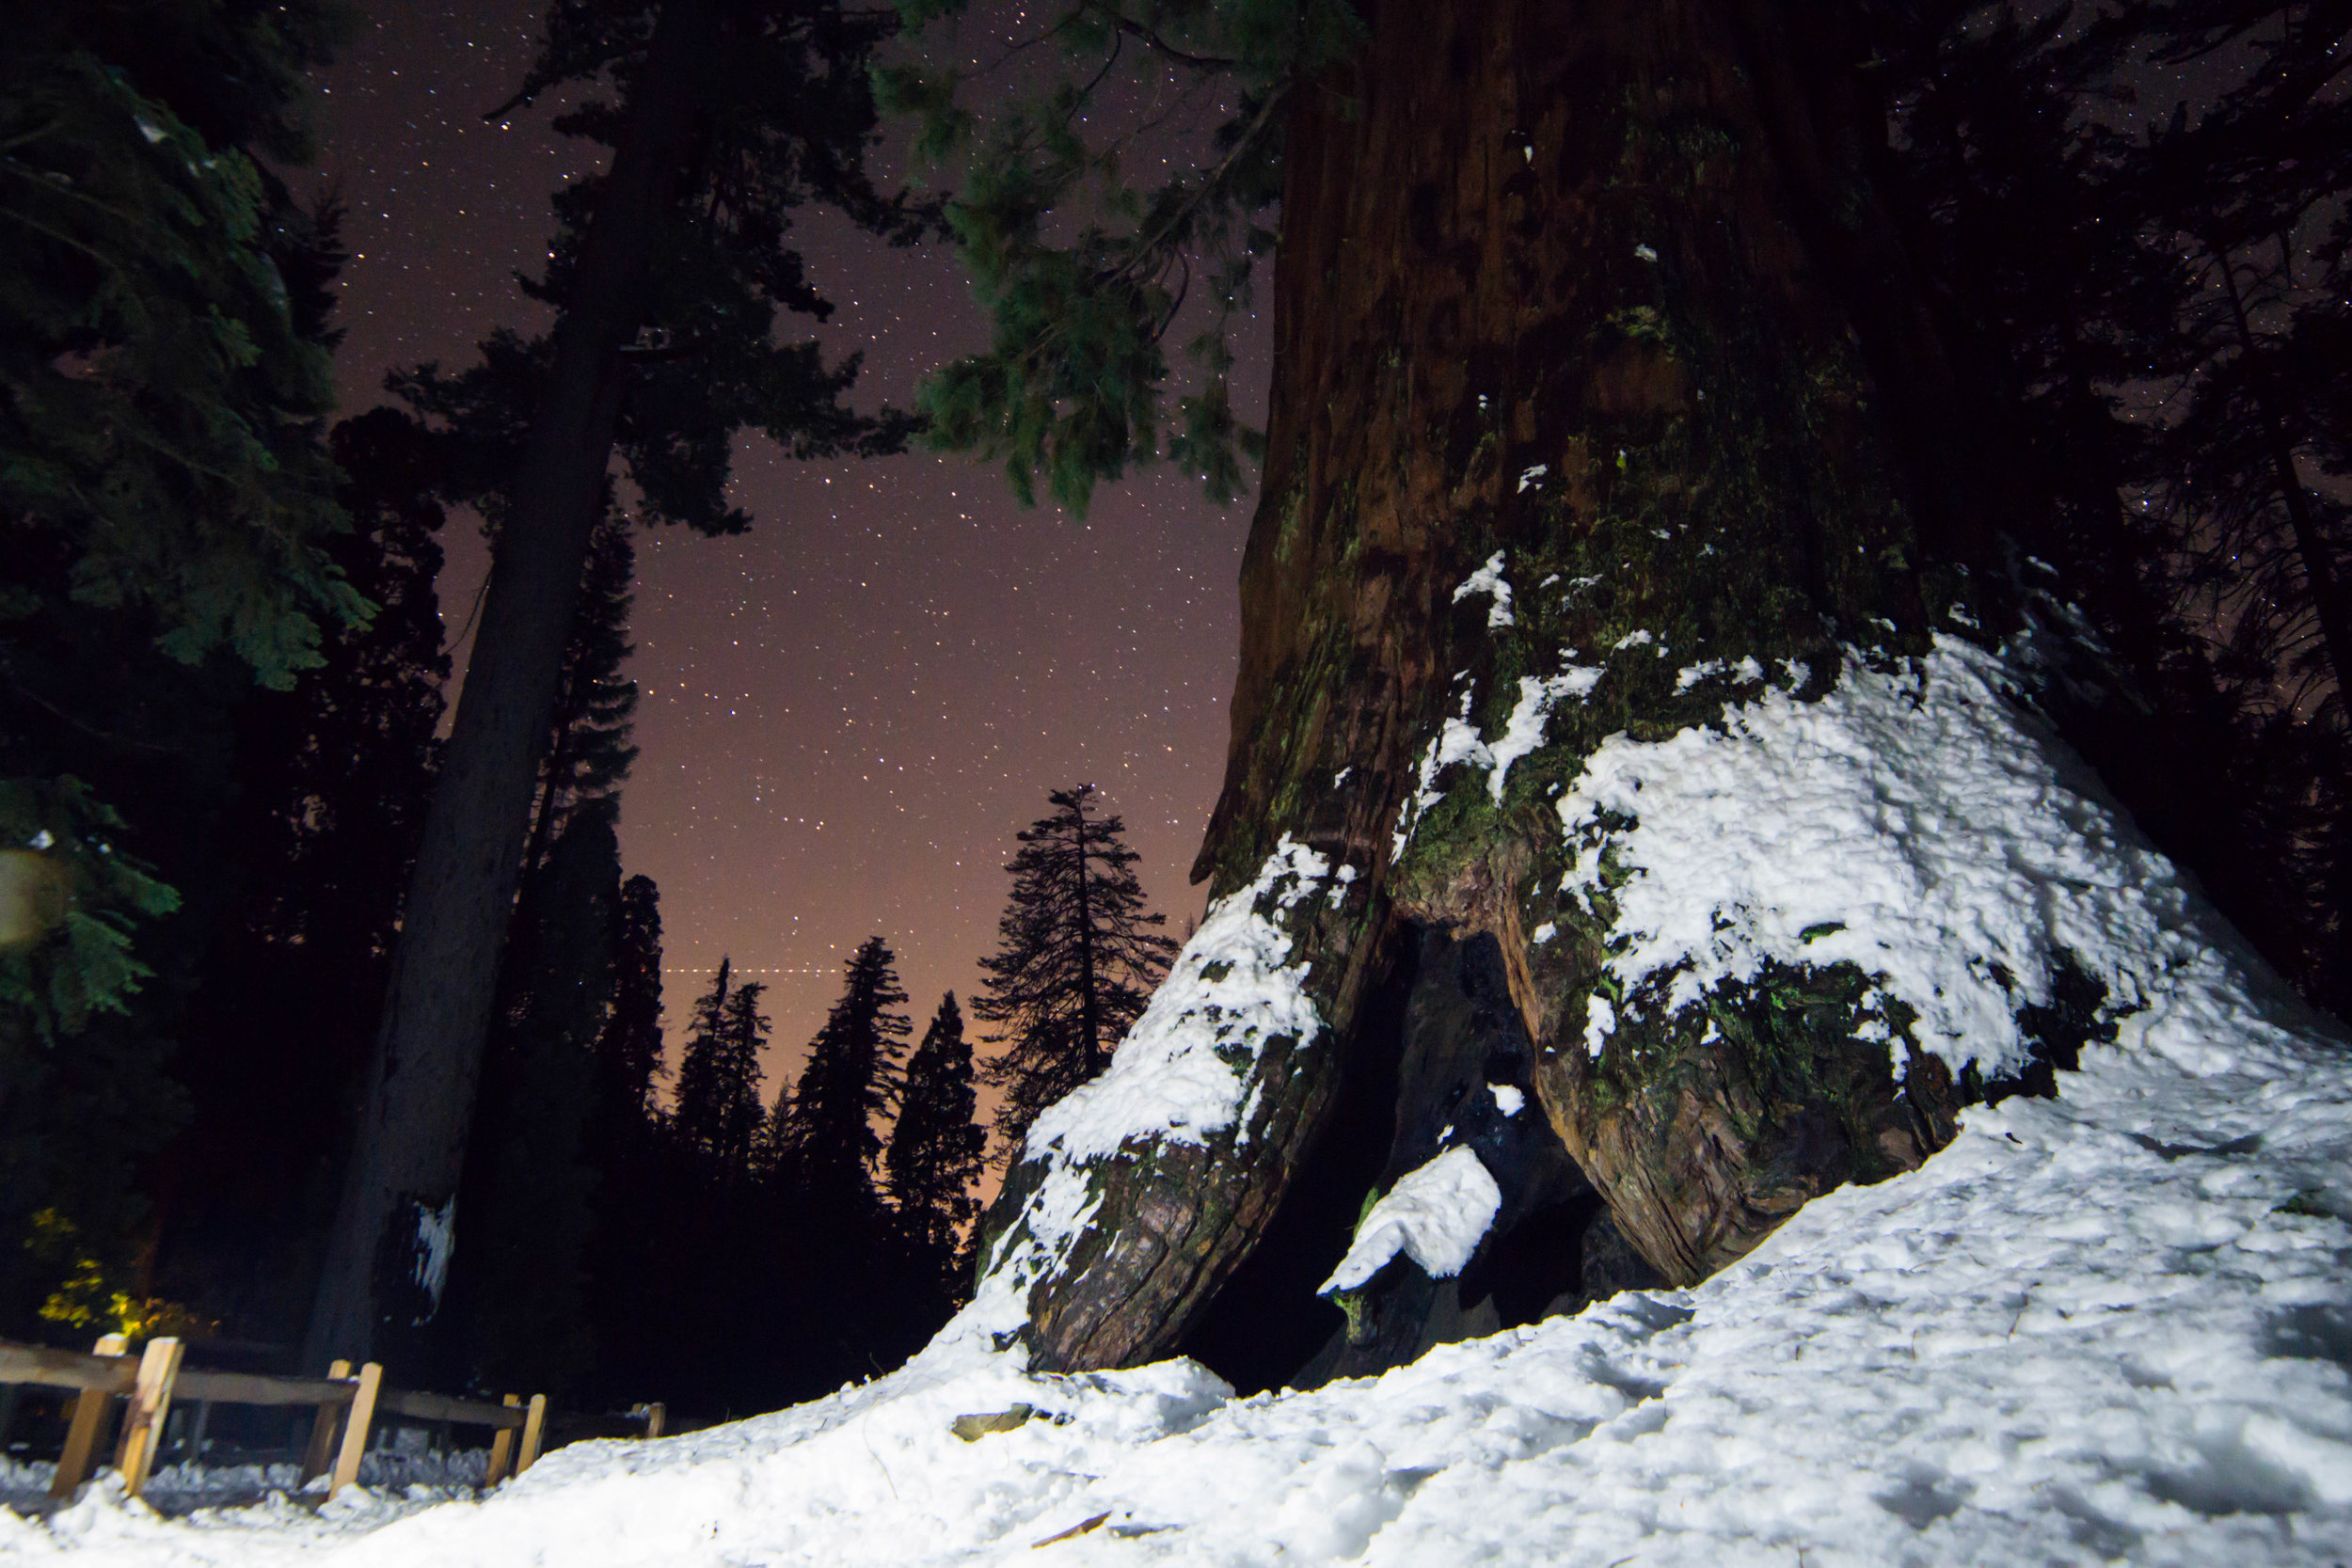 A night hike through Grant Grove offered an eery seclusion with the Robert E. Lee tree towering over us as it climbed into the star scattered sky.